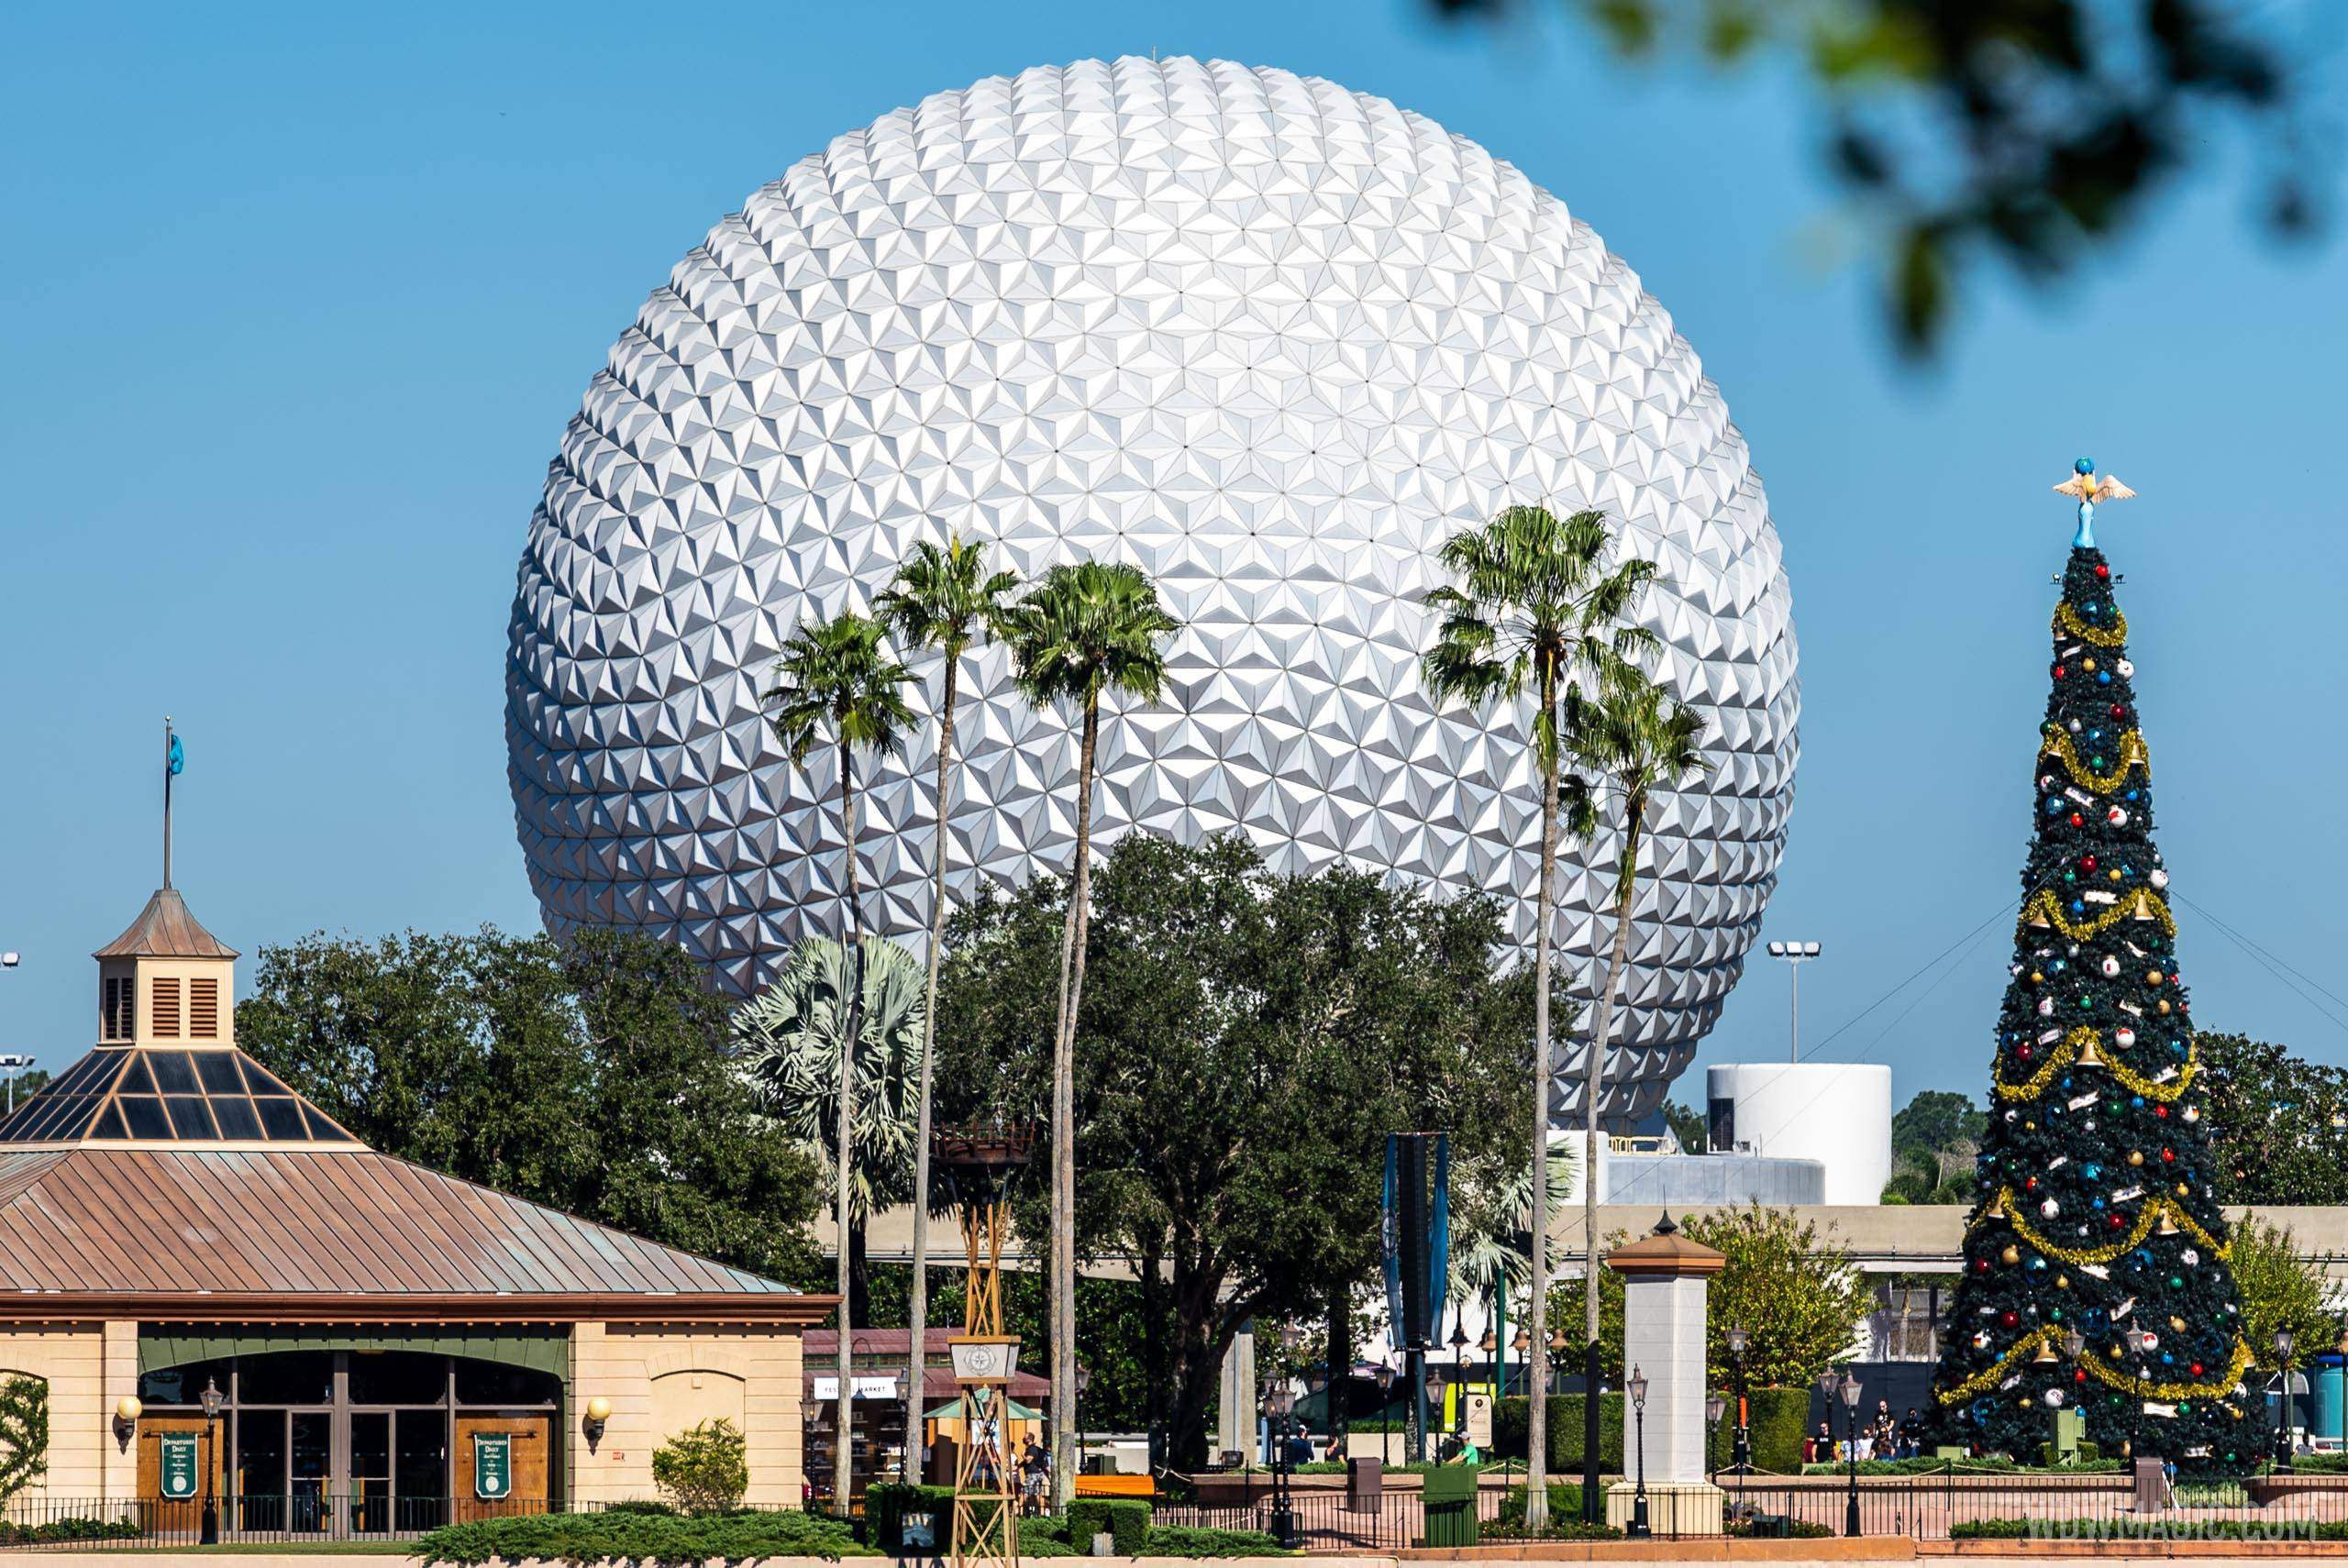 Spaceship Earth overview